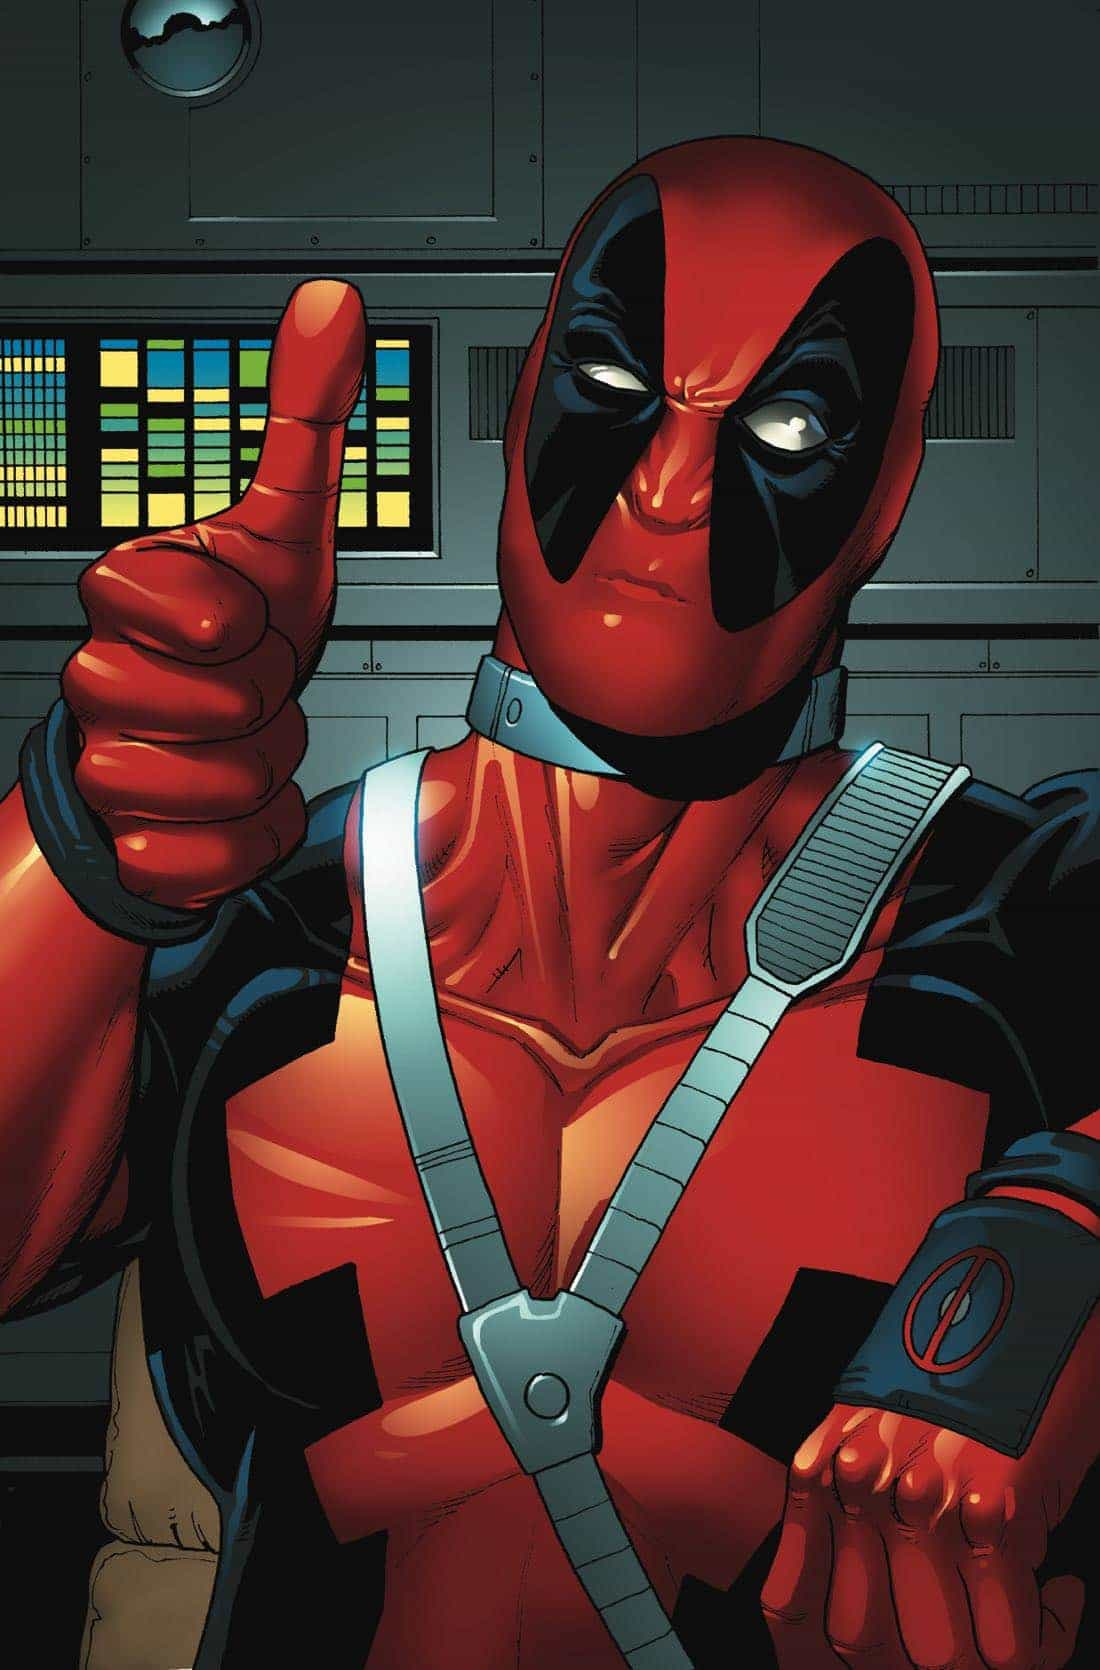 deadpoolcomicart